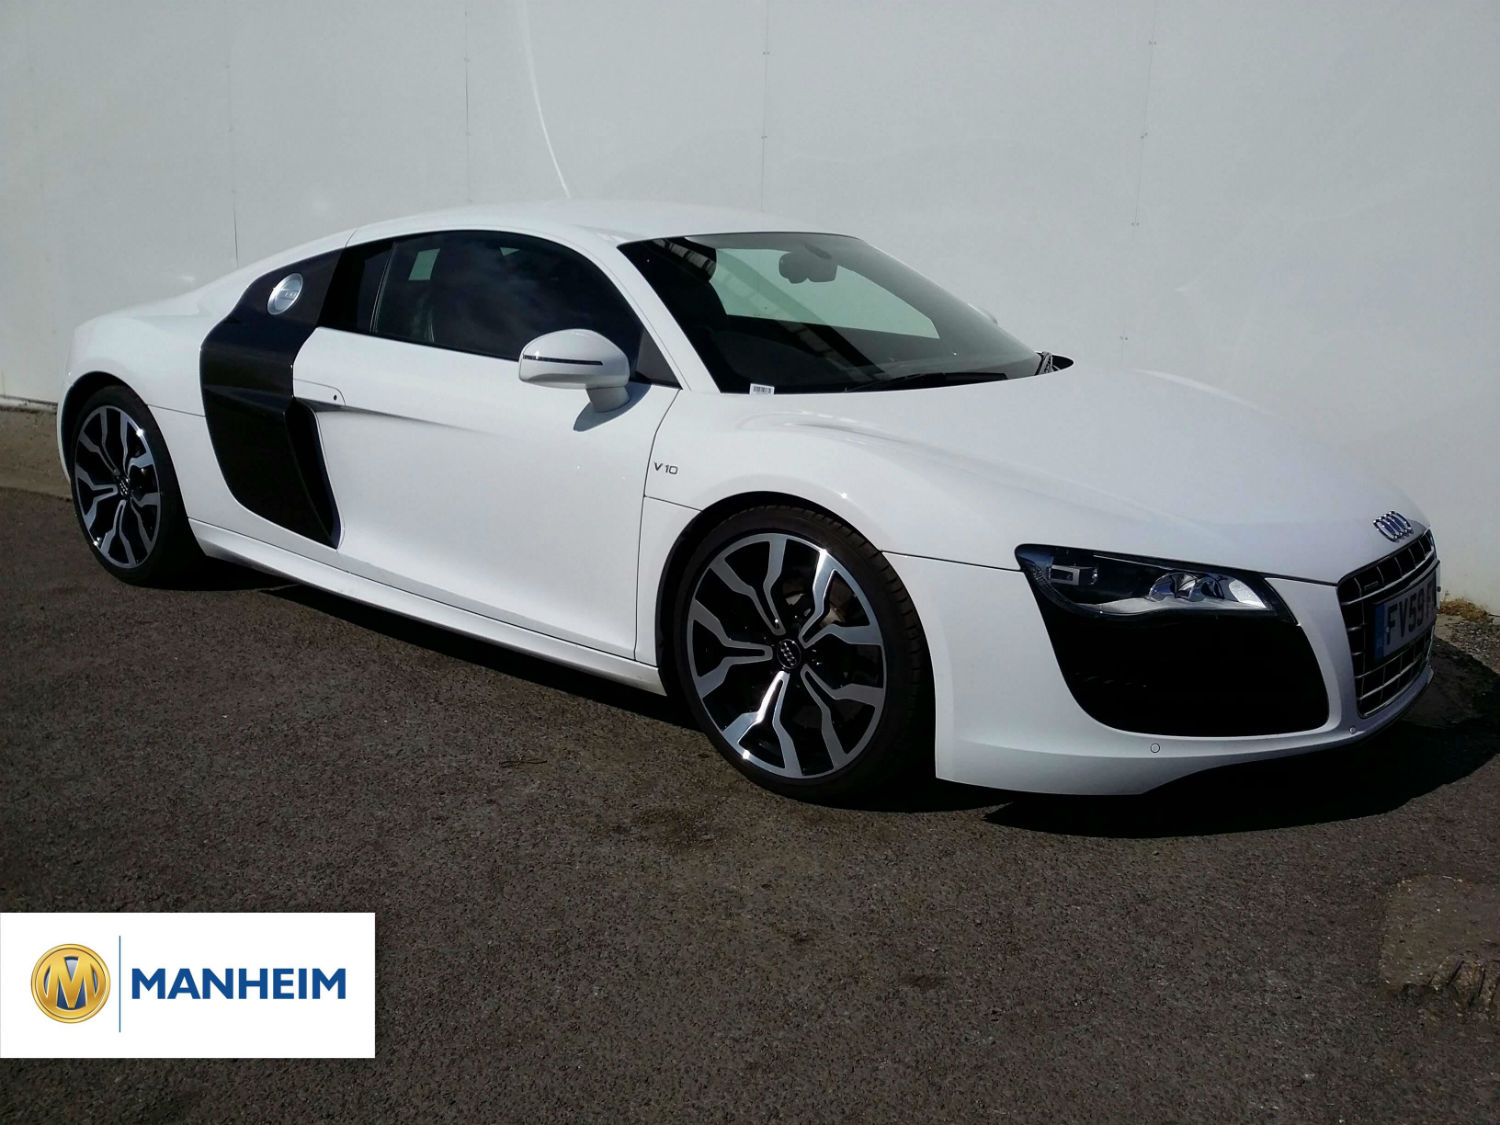 Audi R8 sold at Manheim Northampton